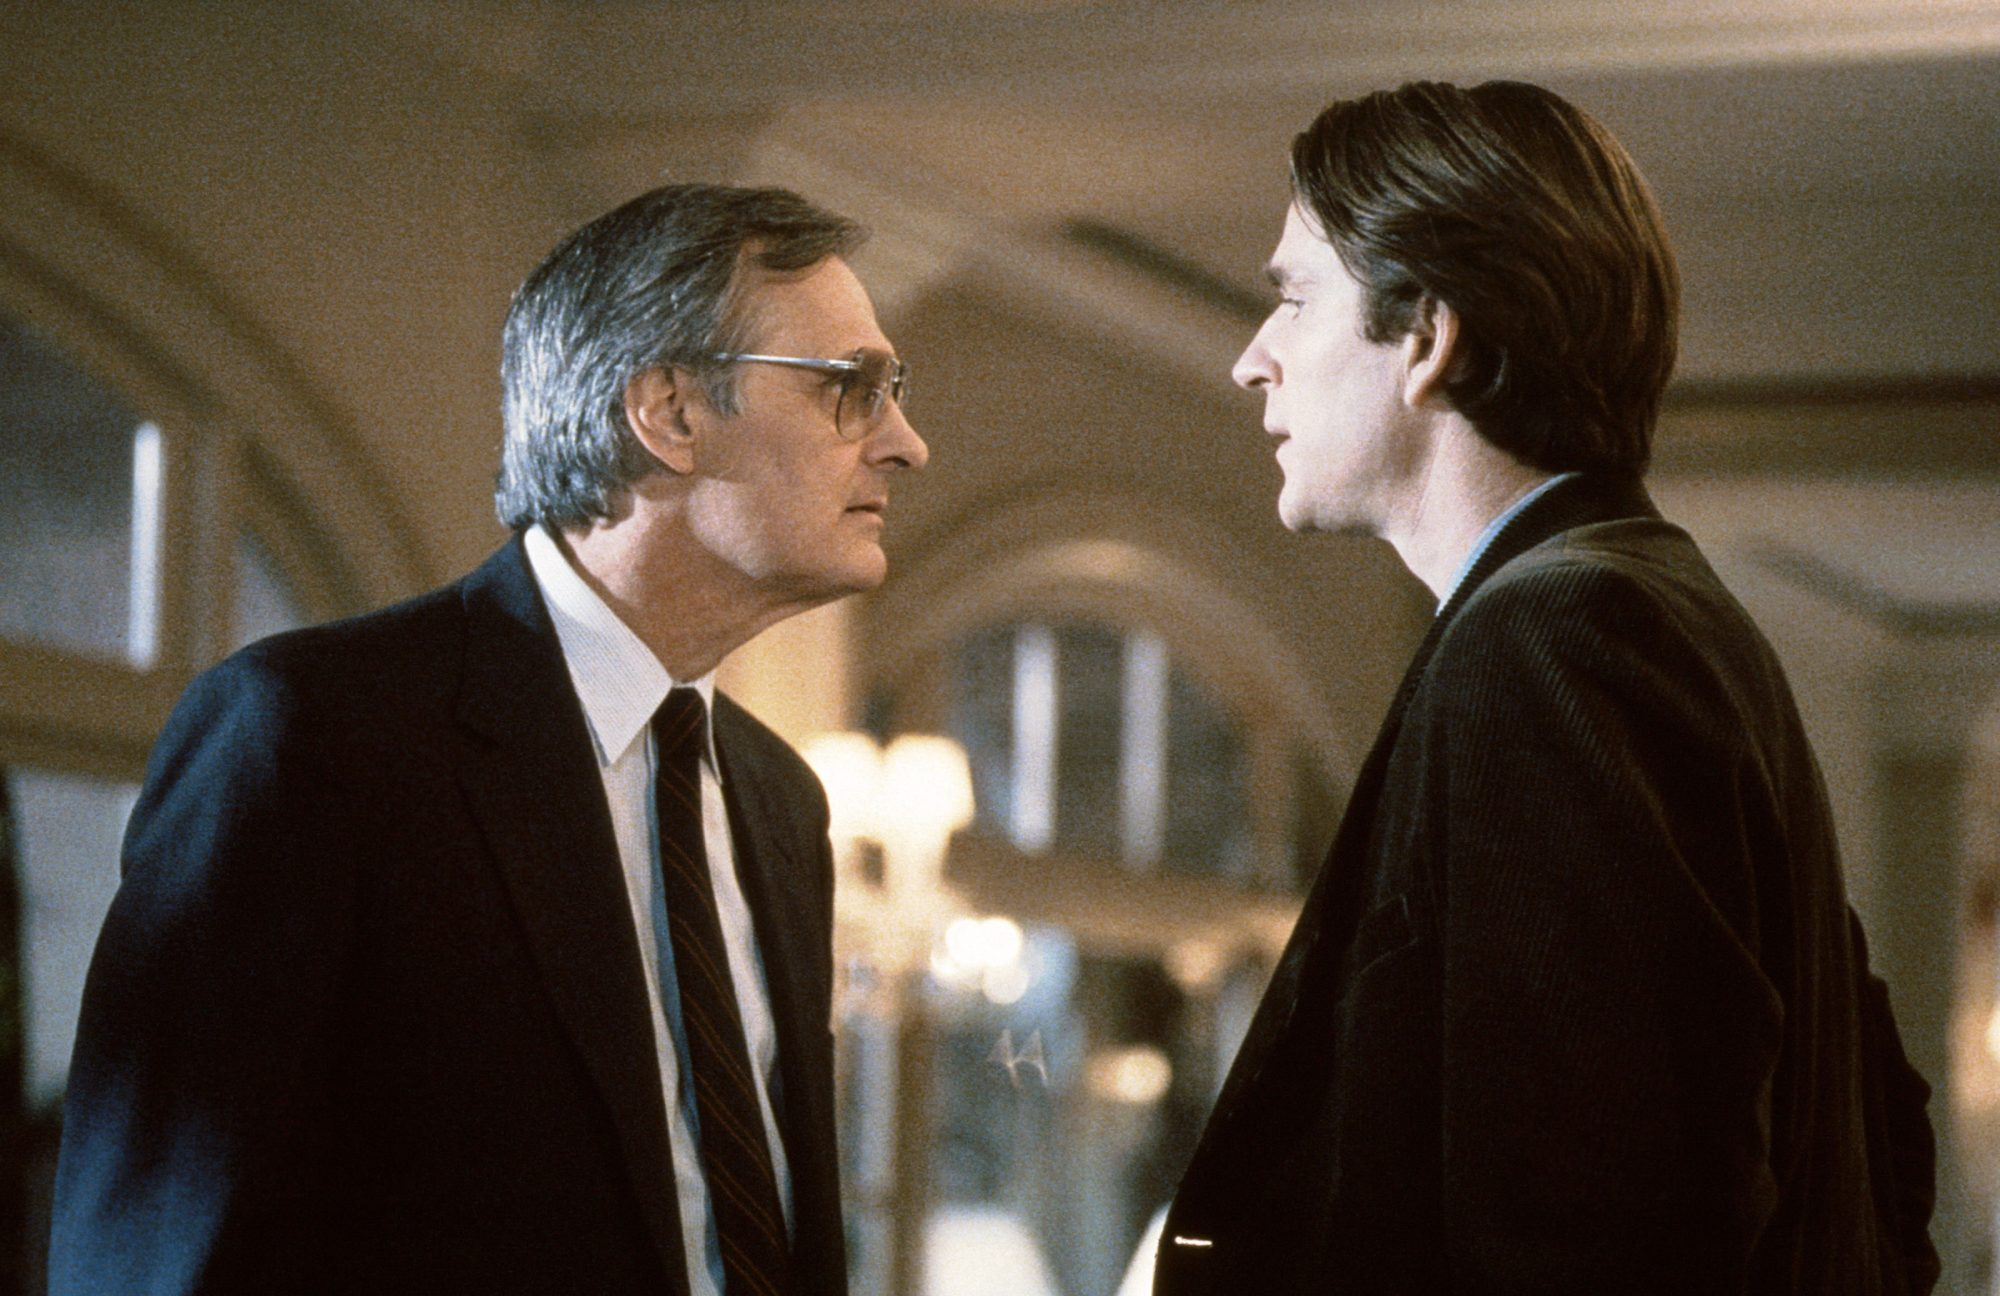 AND THE BAND PLAYED ON, from left: Alan Alda, Matthew Modine, 1993, © HBO/courtesy Everett